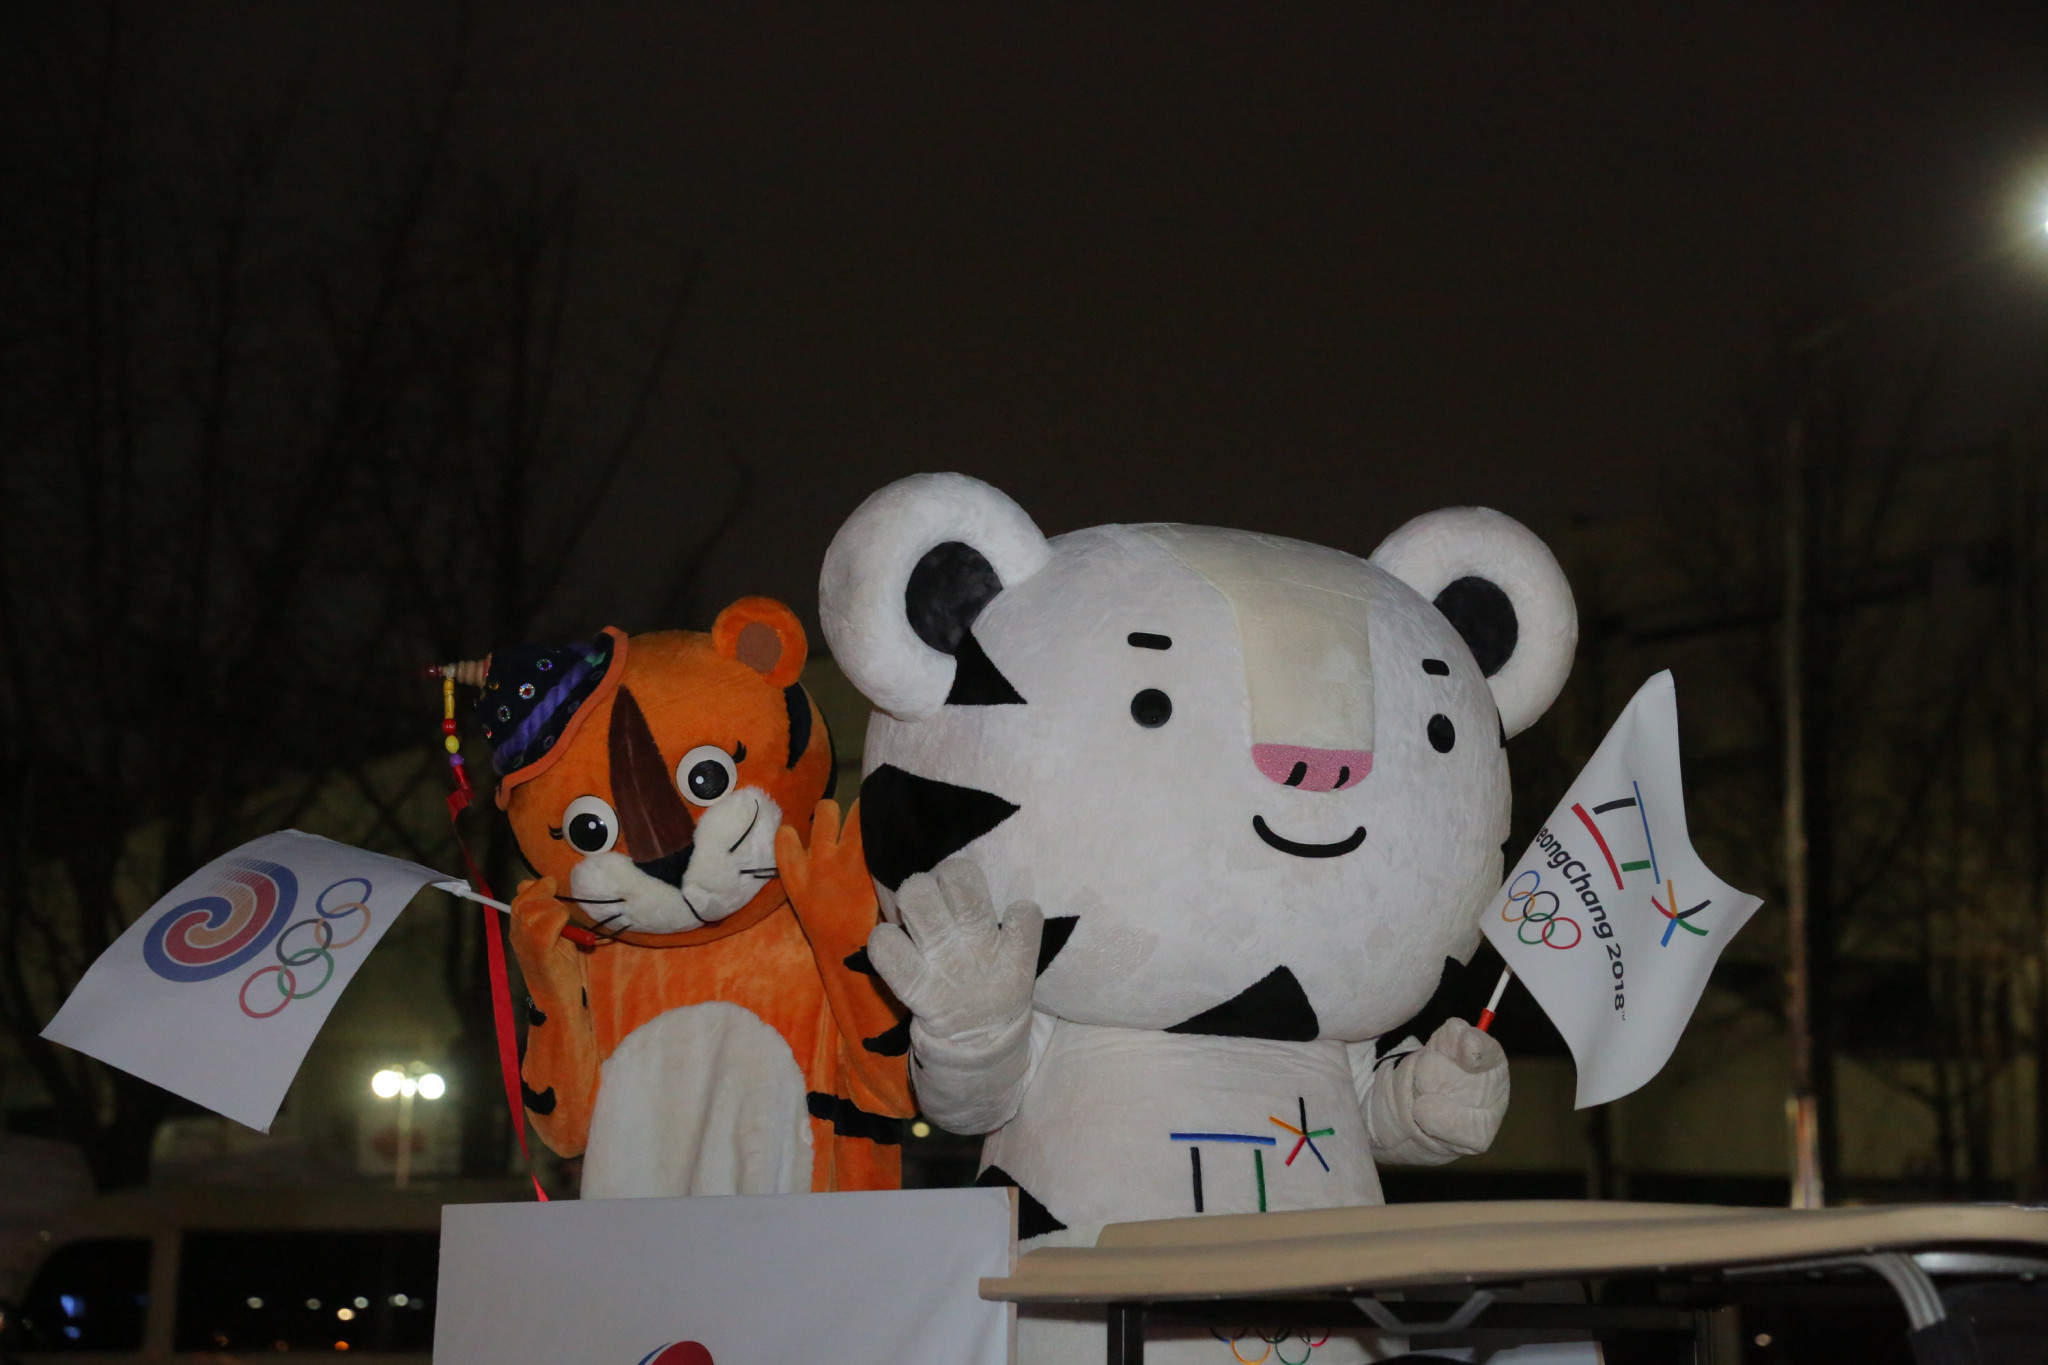 The Seoul 1988 and Pyeongchang 2018 mascots met each other during the Relay ©Pyeongchang 2018